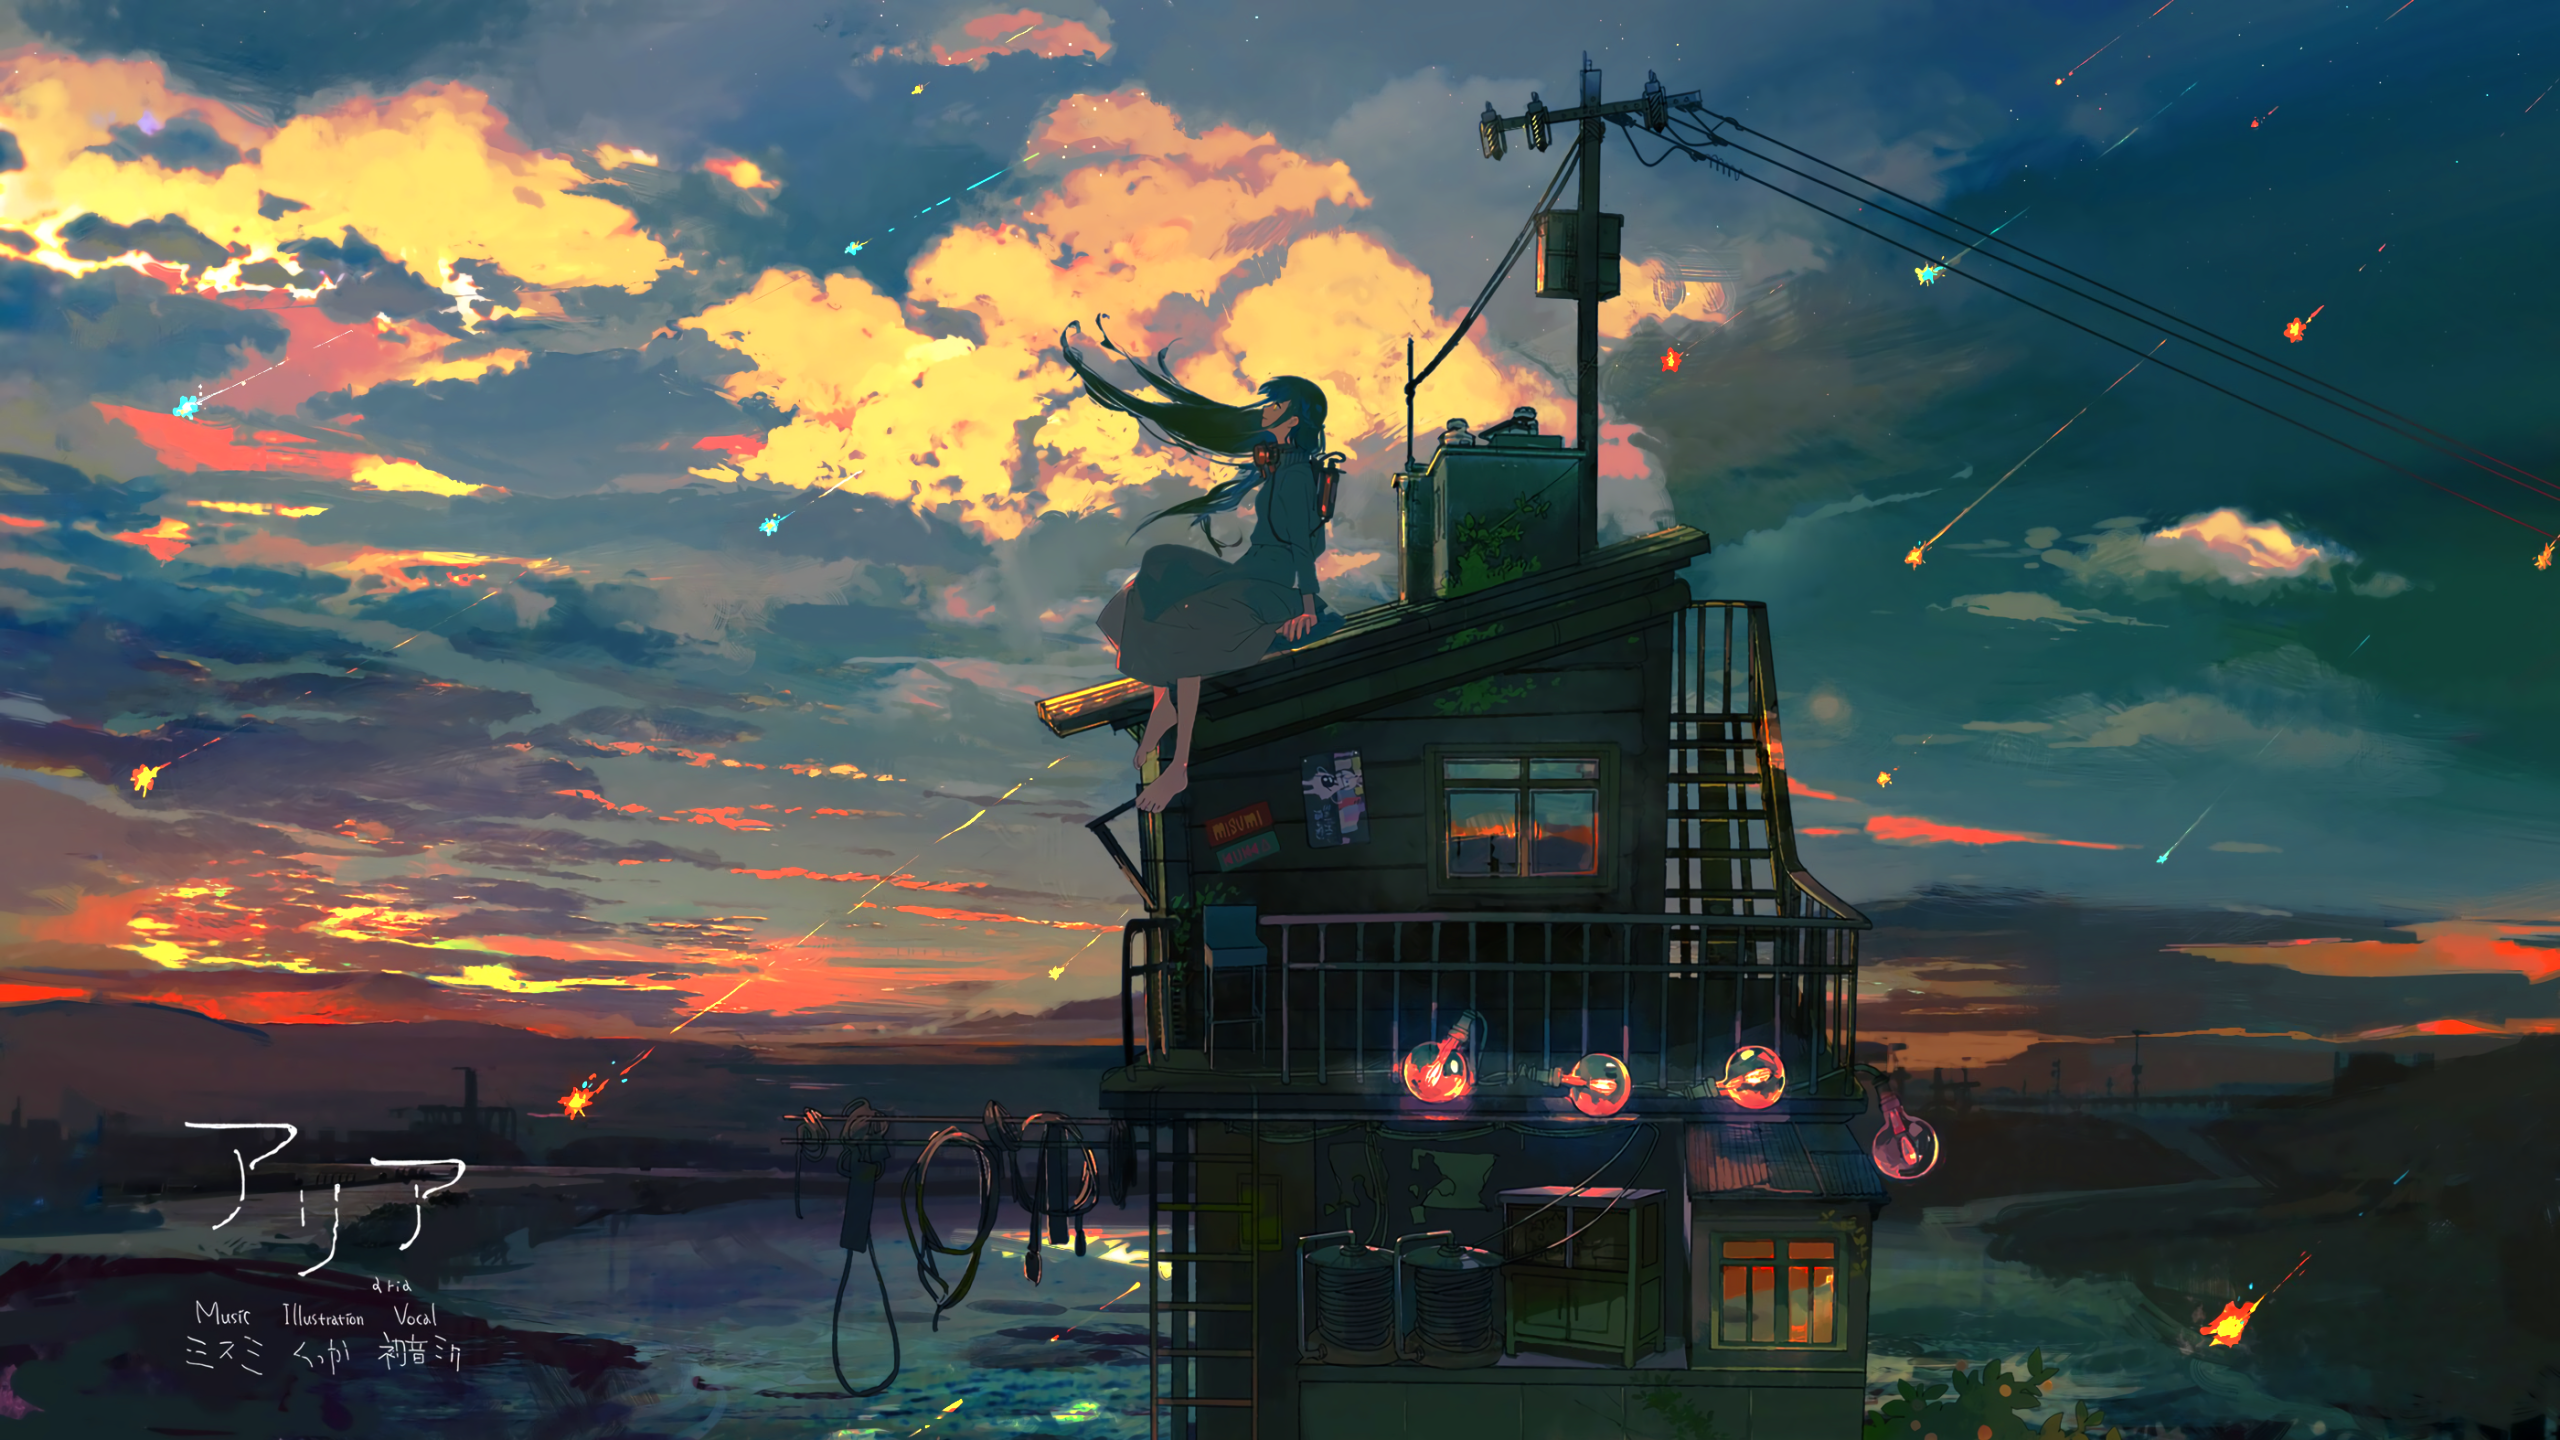 Anime Original Youtube Channel Cover Cover Abyss Anime Scenery Scenery Wallpaper Anime Background